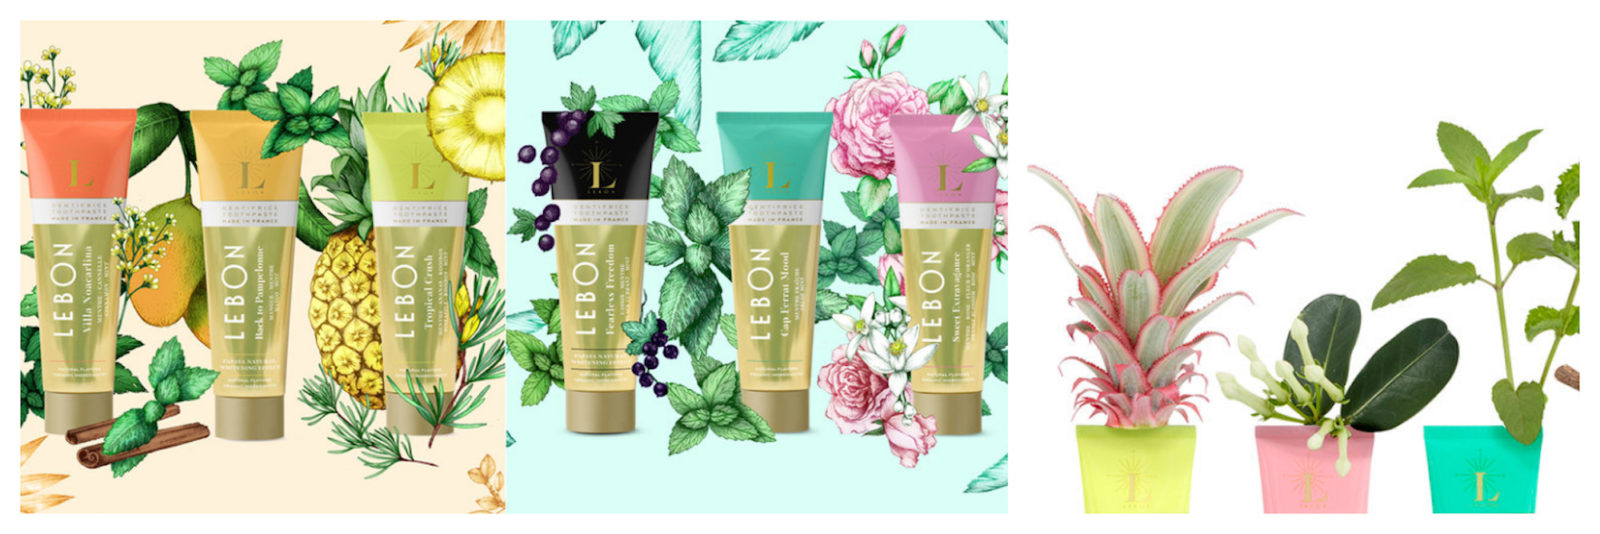 Le Bon French toothpaste made from plants is free from triclosan, a potentially toxic ingredient, available to buy at French beauty brand store in Paris, Oh My Cream!